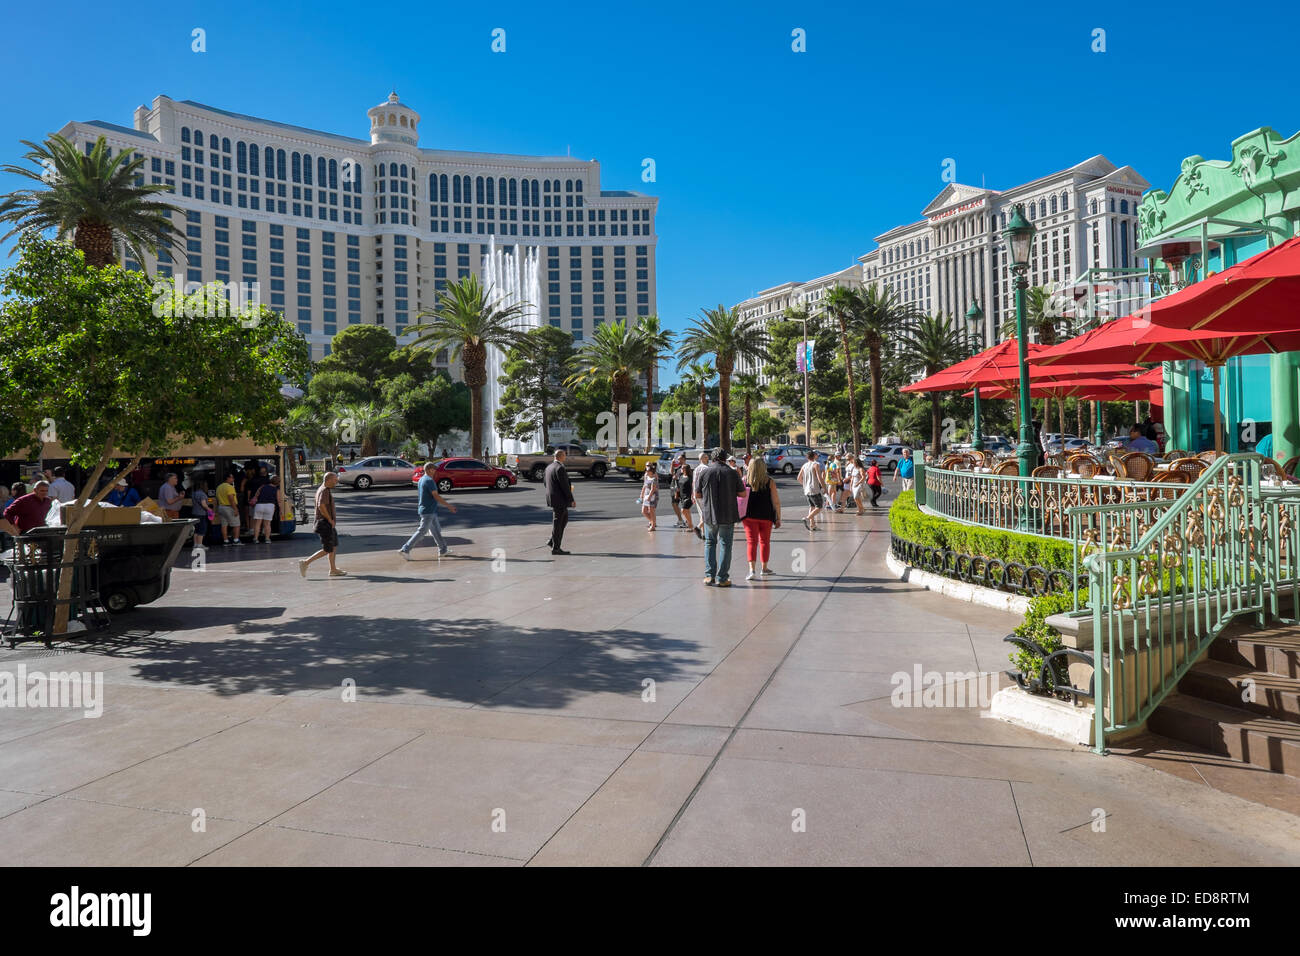 Exteriors of Bellagio (left) and Caesar's Palace (right) at the other side of Las Vegas Boulevard. - Stock Image